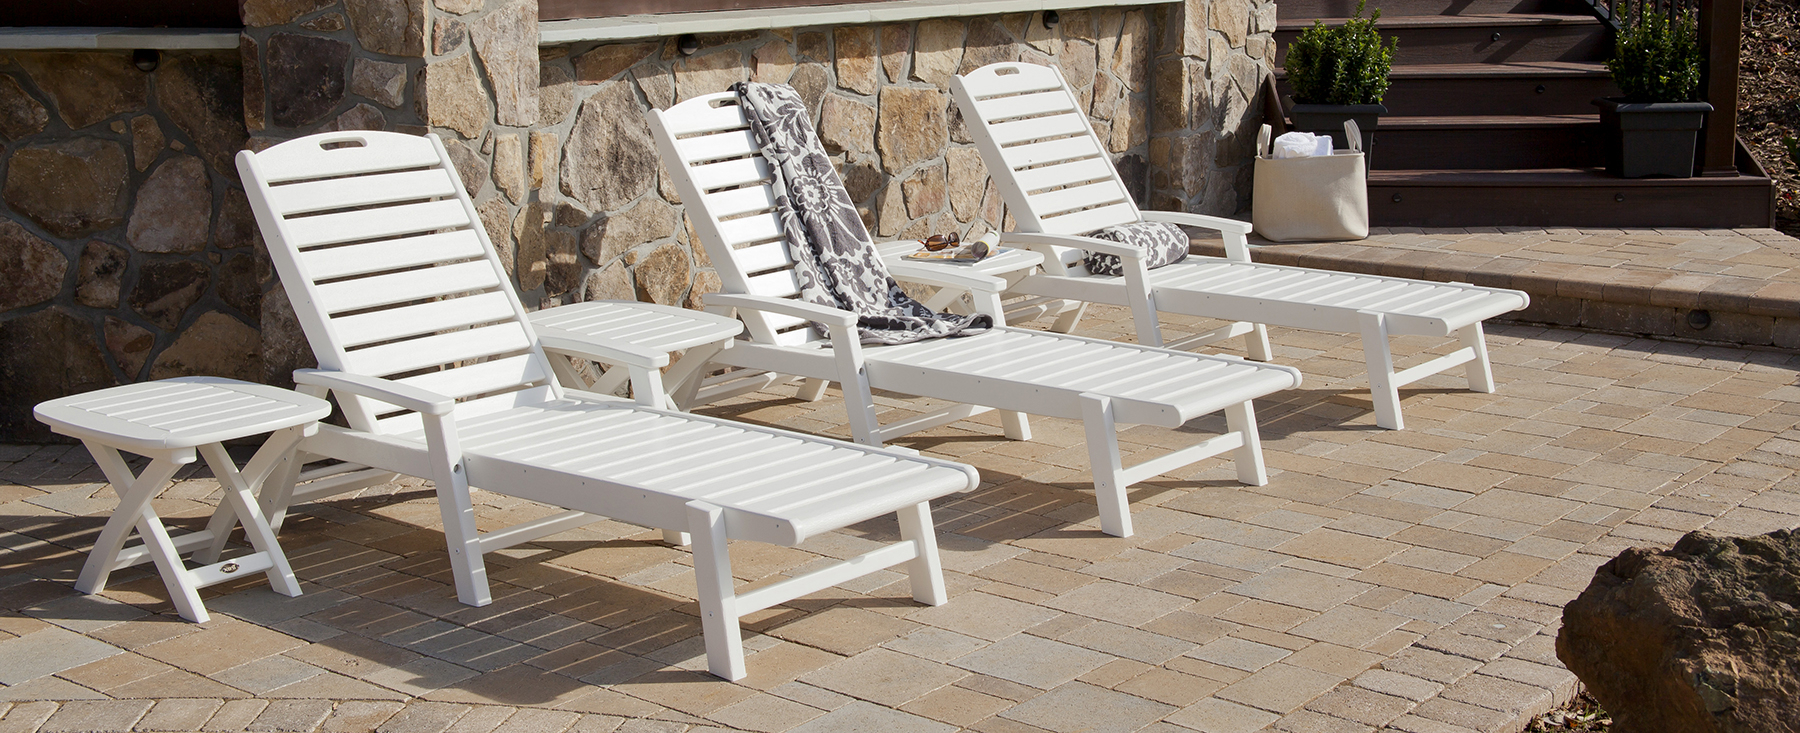 2020 Wood Blue And White Cushion Outdoor Chaise Lounge Chairs Intended For The Shopper's Guide To Buying An Outdoor Chaise Lounge (View 4 of 25)